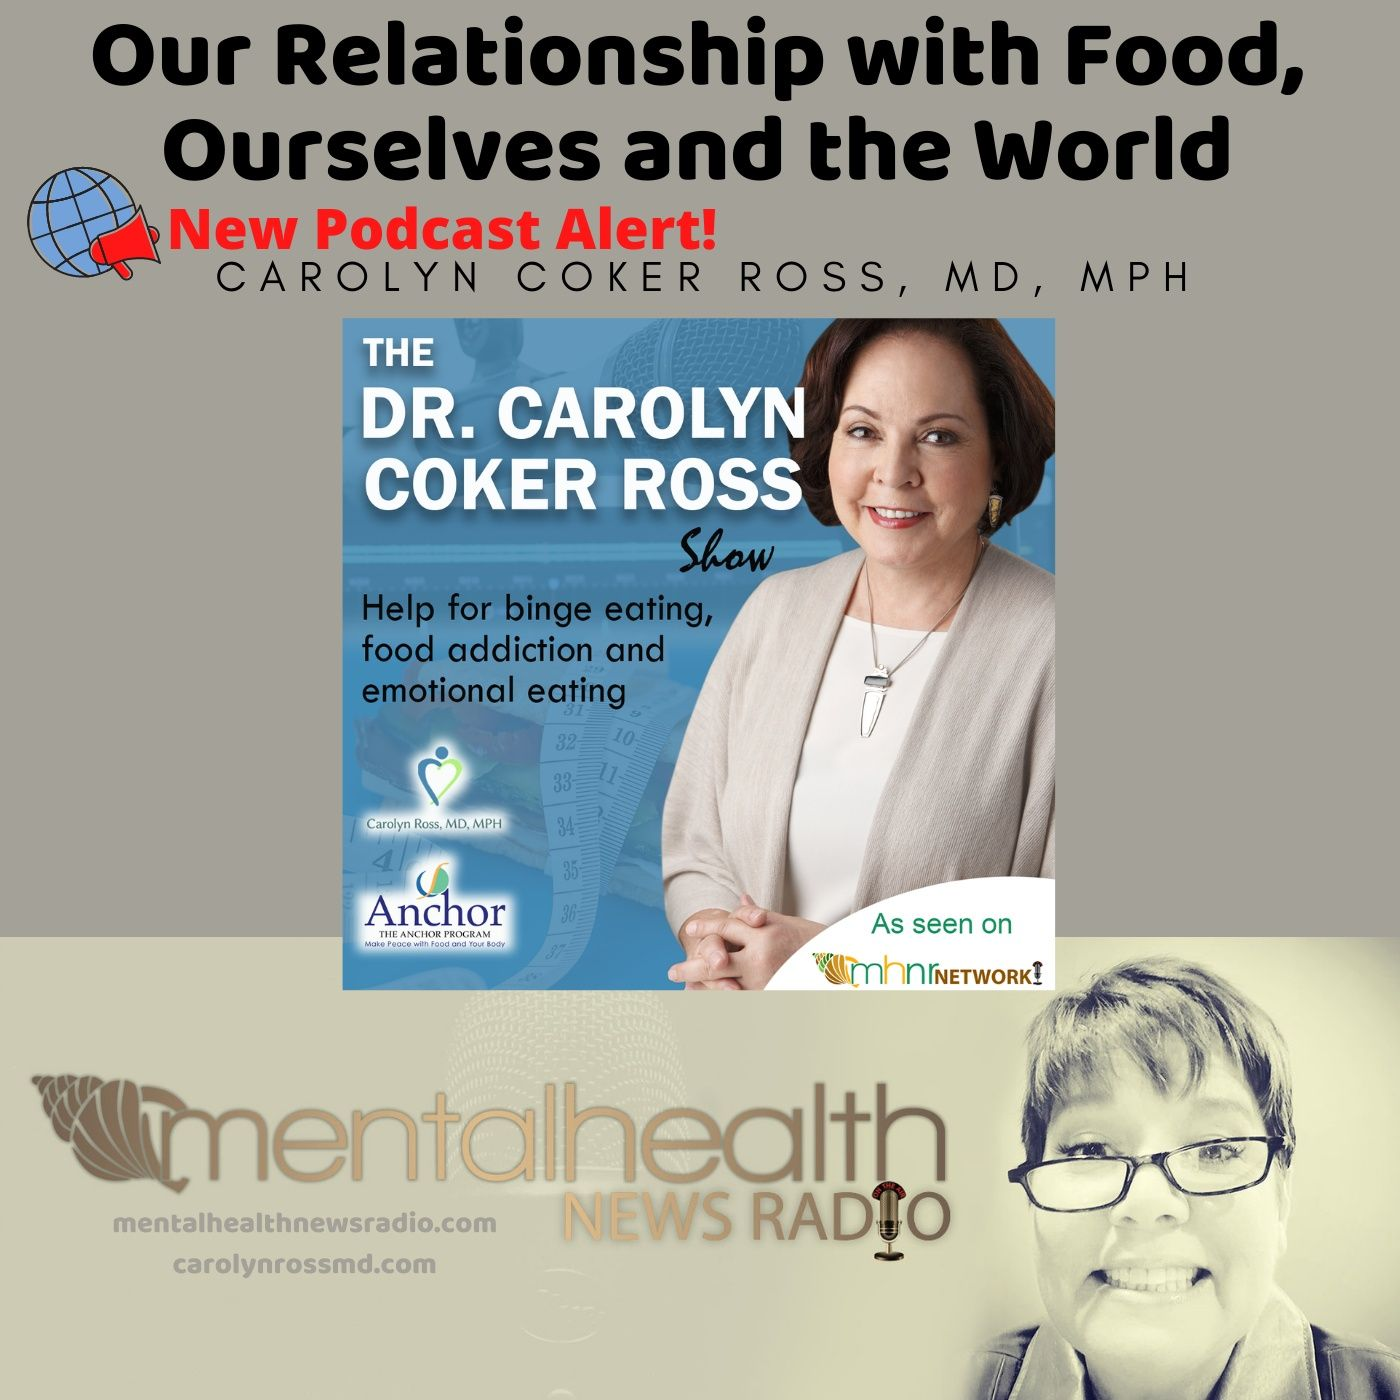 Mental Health News Radio - Our Relationship with Food, Ourselves and the World